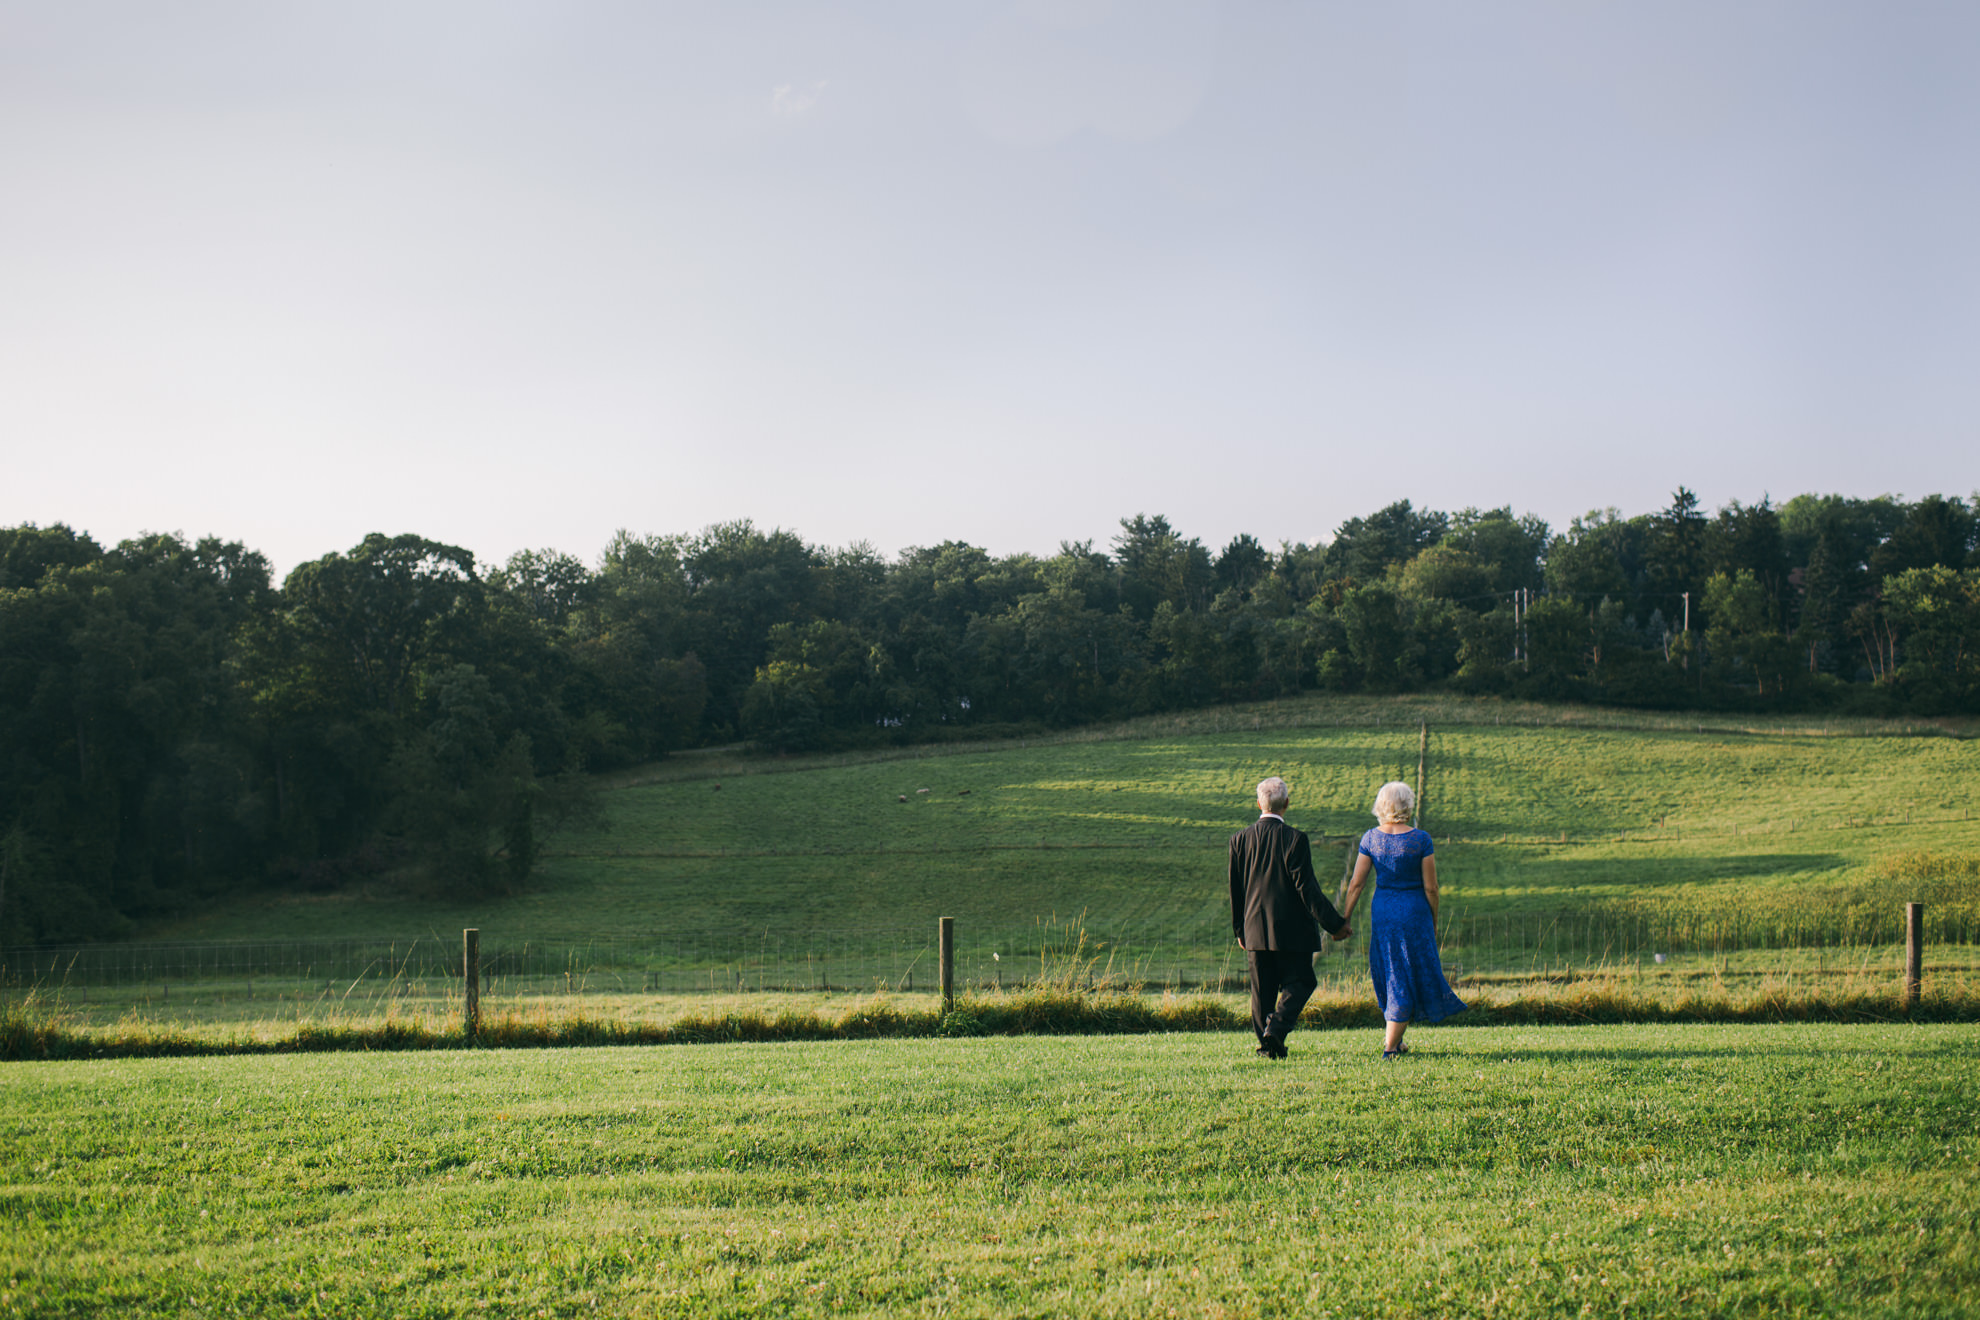 pittsburgh-pa-summer-farm-wedding